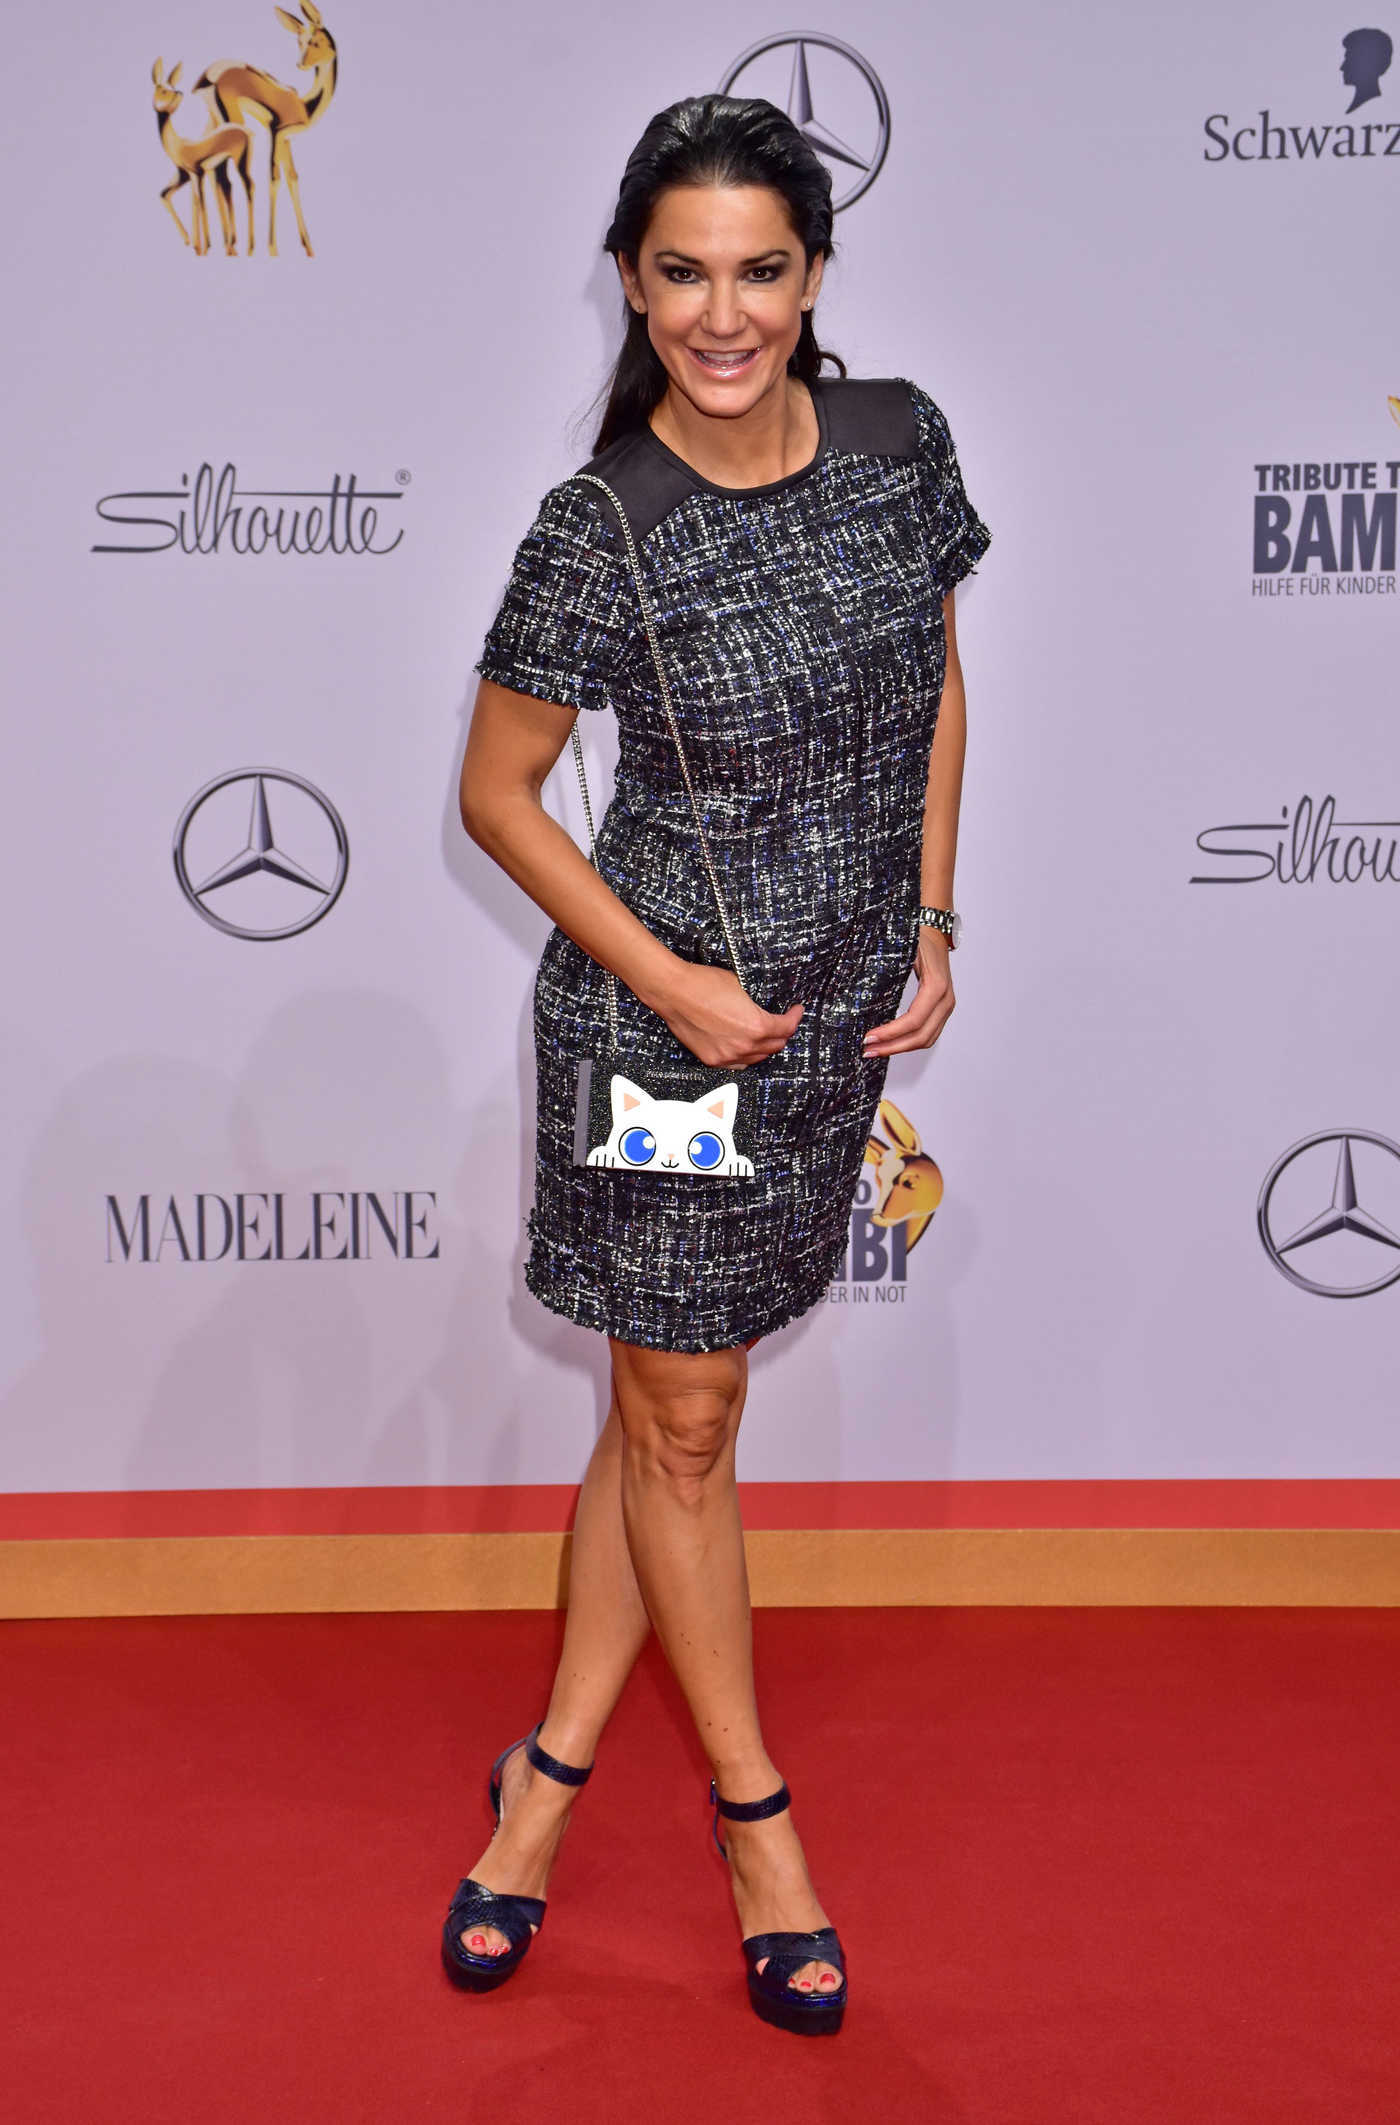 Mariella Ahrens Tribute to Bambi Charity Gala at Station in Berlin 10/06/2016